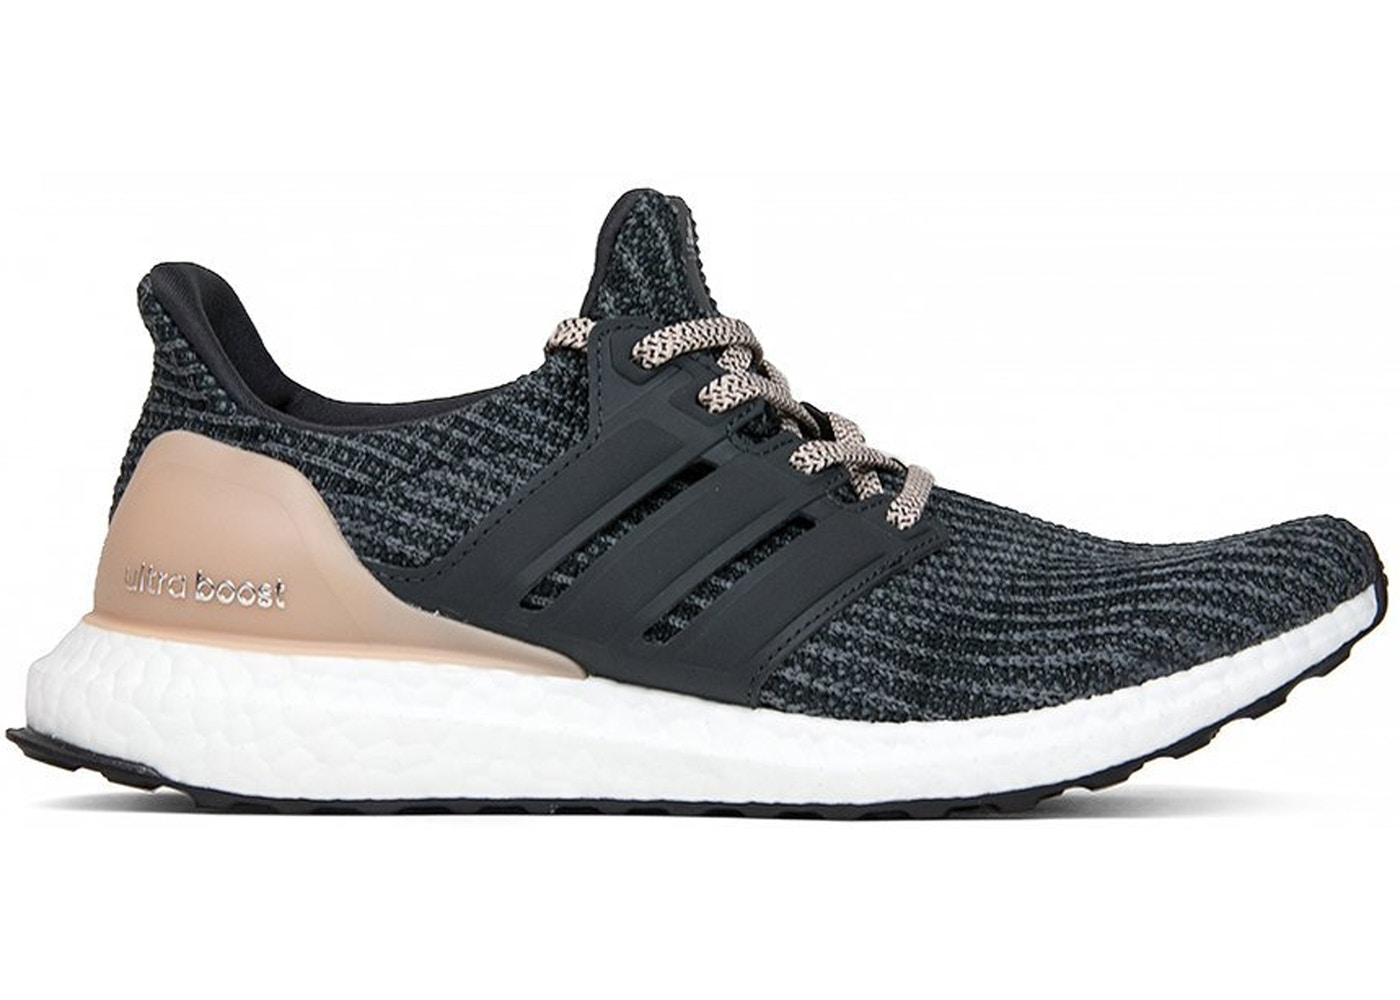 Adidas Ultraboost 4.0 Ash Pearl Core Black BB6174 8 11.5 boost pk